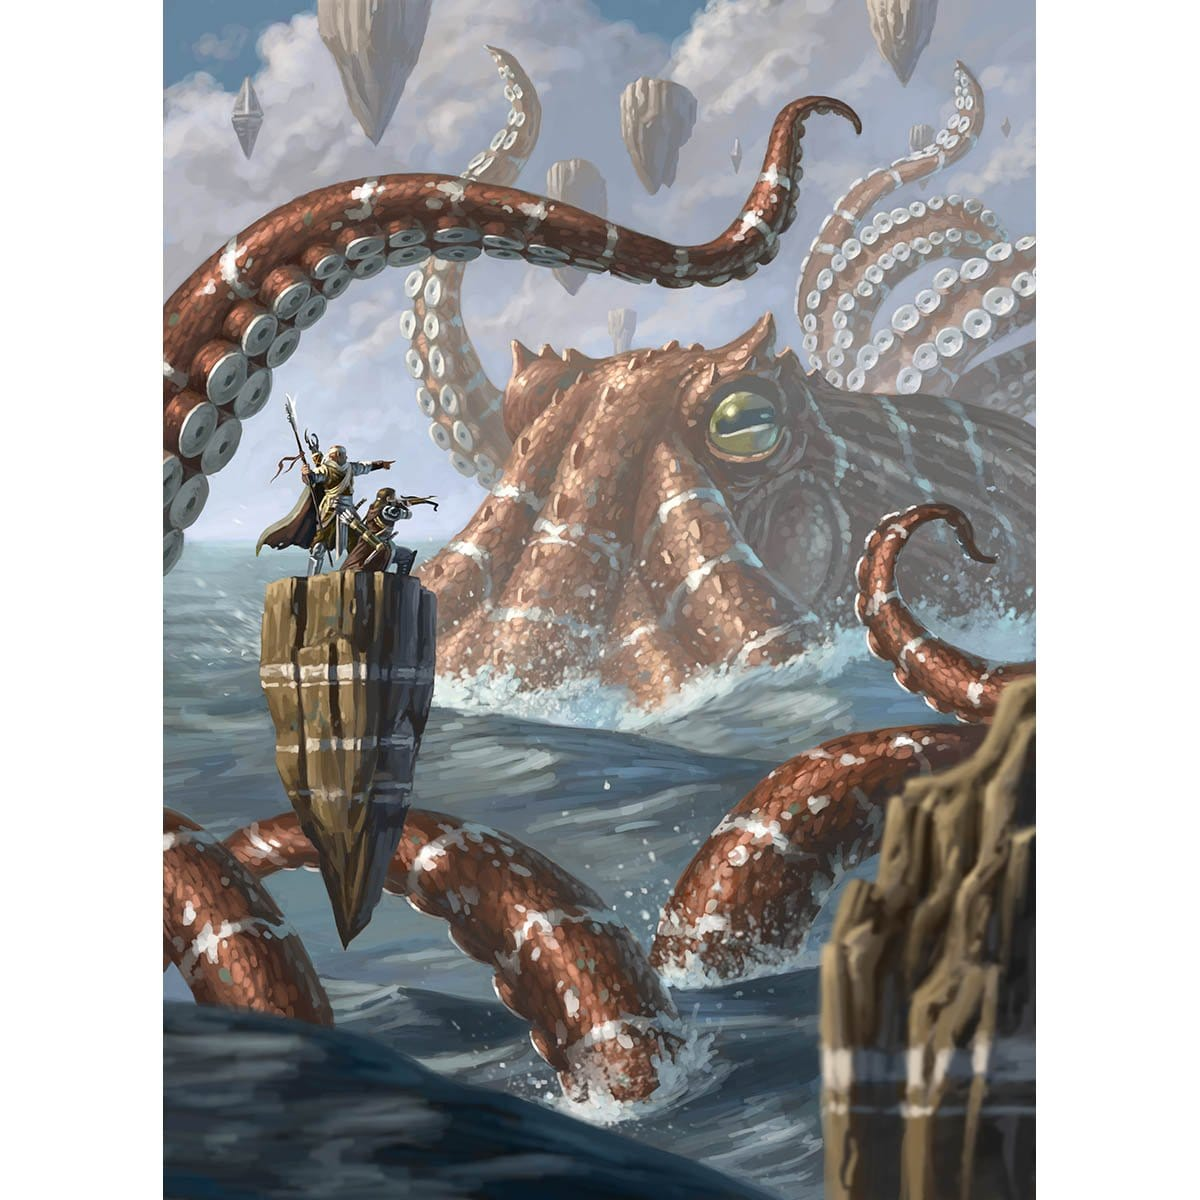 Octopus Token Print - Print - Original Magic Art - Accessories for Magic the Gathering and other card games